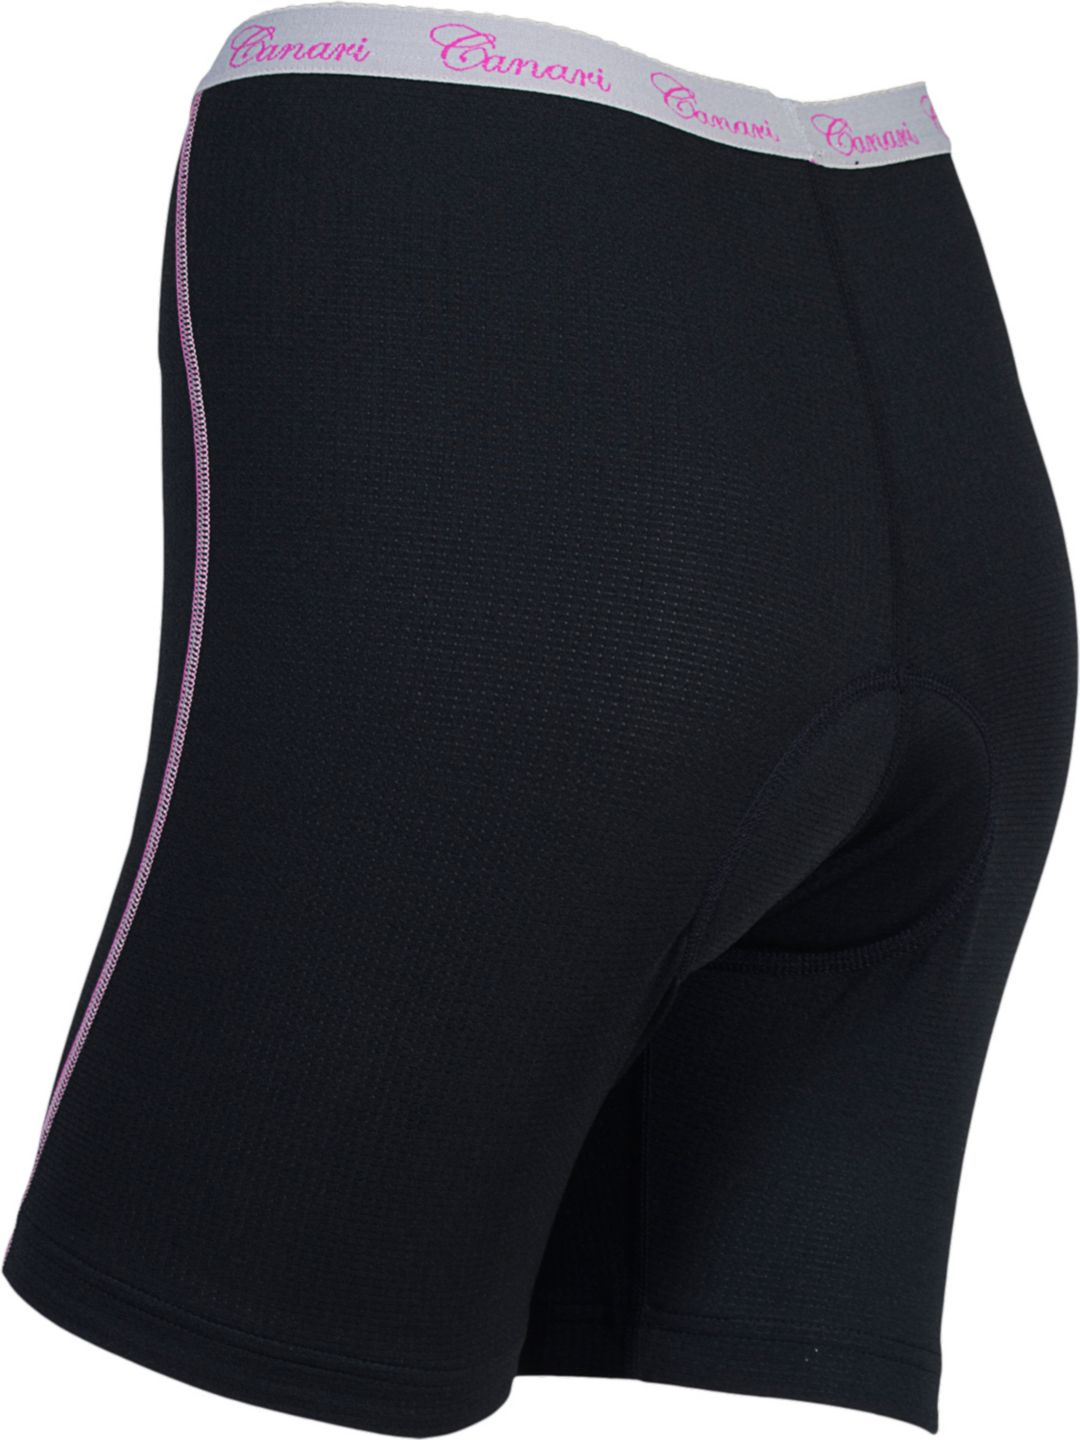 62a483146ade Canari Women's Gel Liner Cycling Shorts | DICK'S Sporting Goods